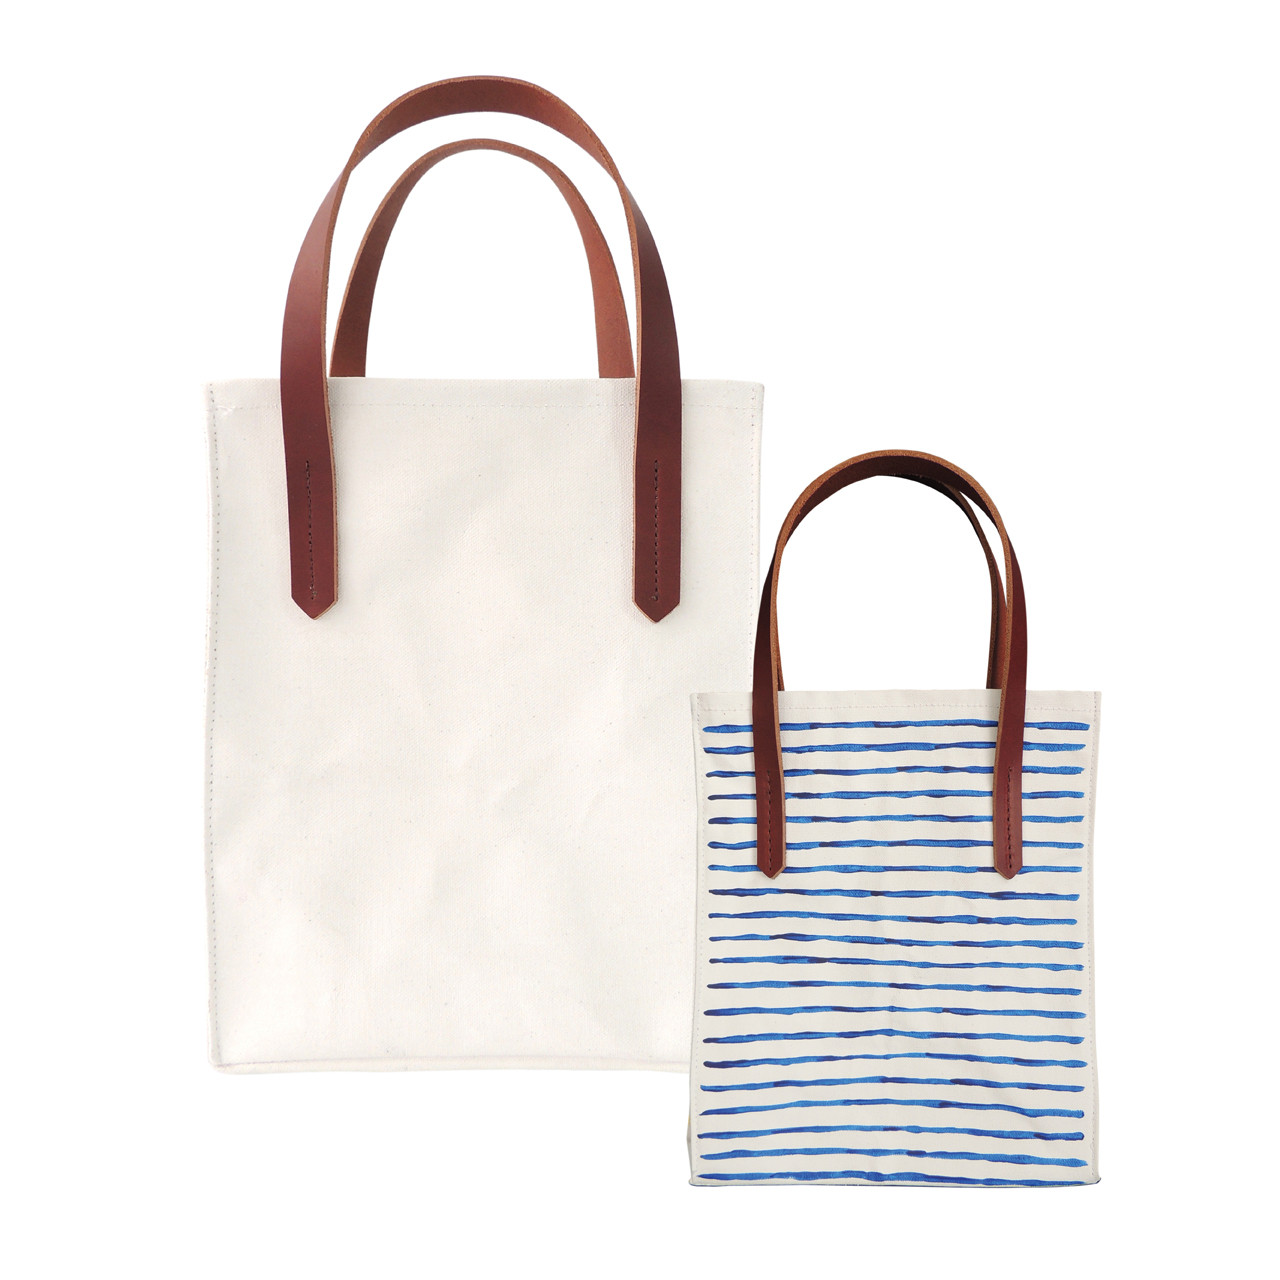 Paintable Bag | Small Tote with Leather Straps | Spicer Bags